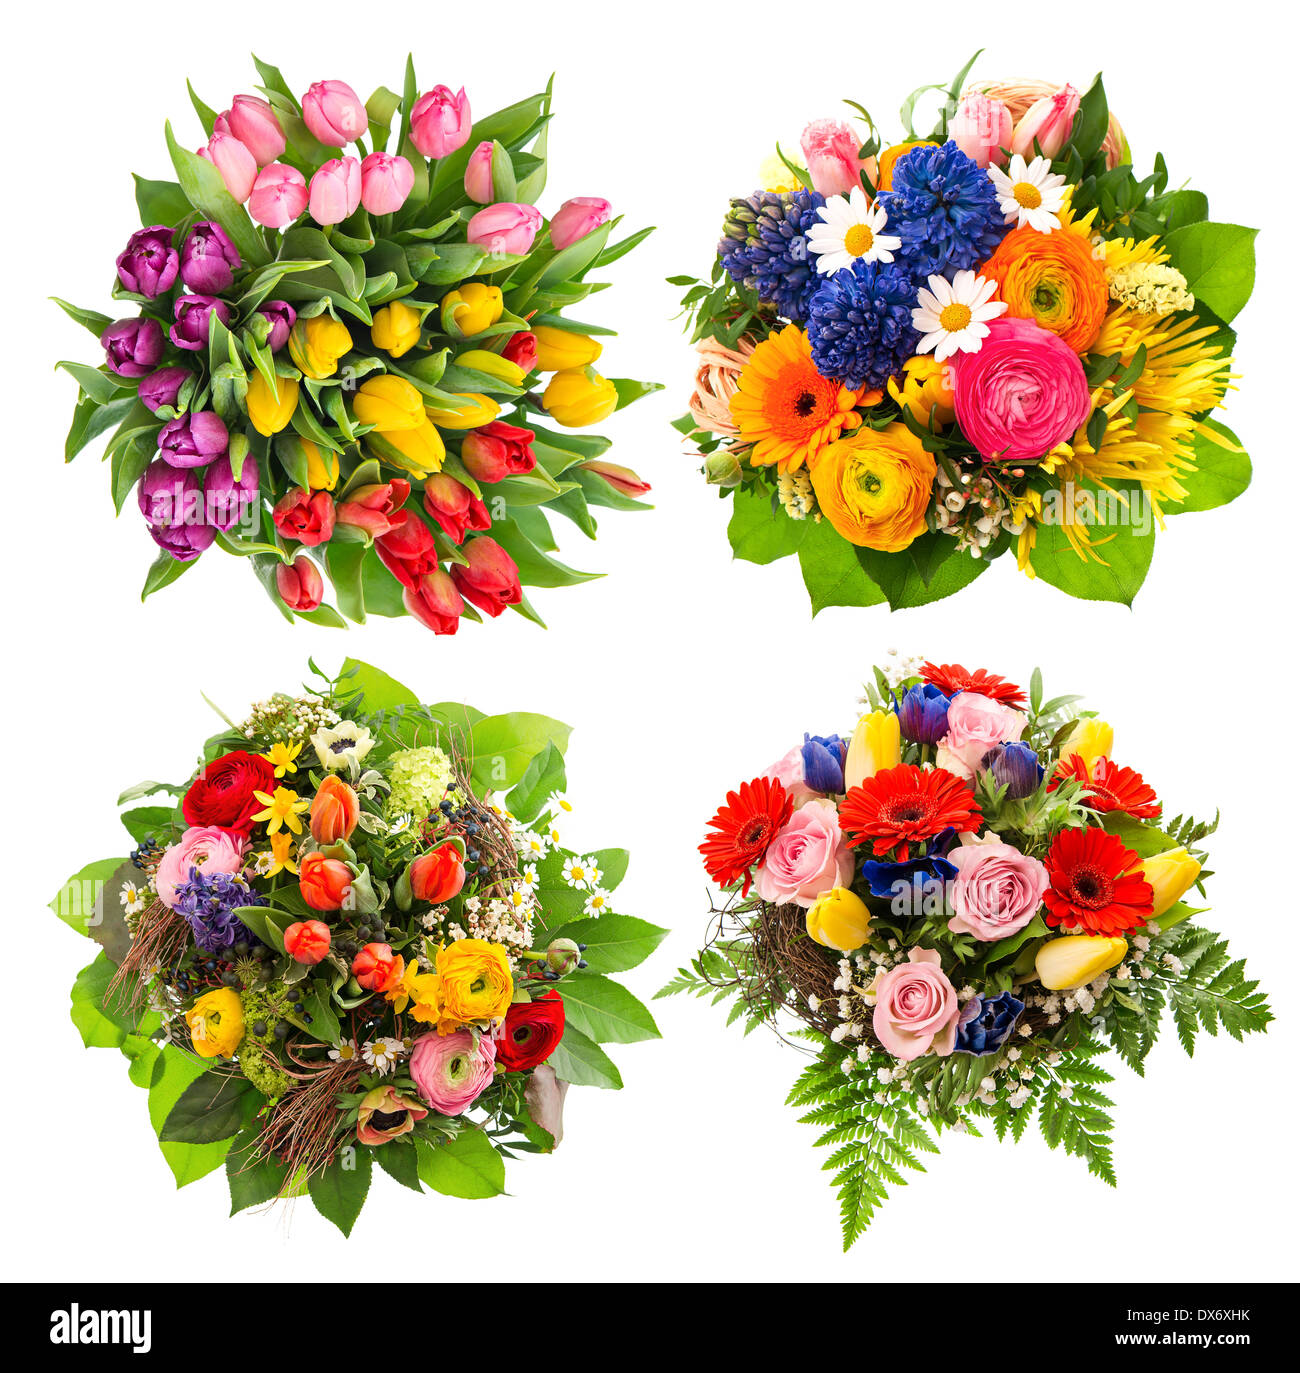 Top view of four colorful flower bouquets for birthday wedding top view of four colorful flower bouquets for birthday wedding mothers day easter multicolor arrangements izmirmasajfo Image collections